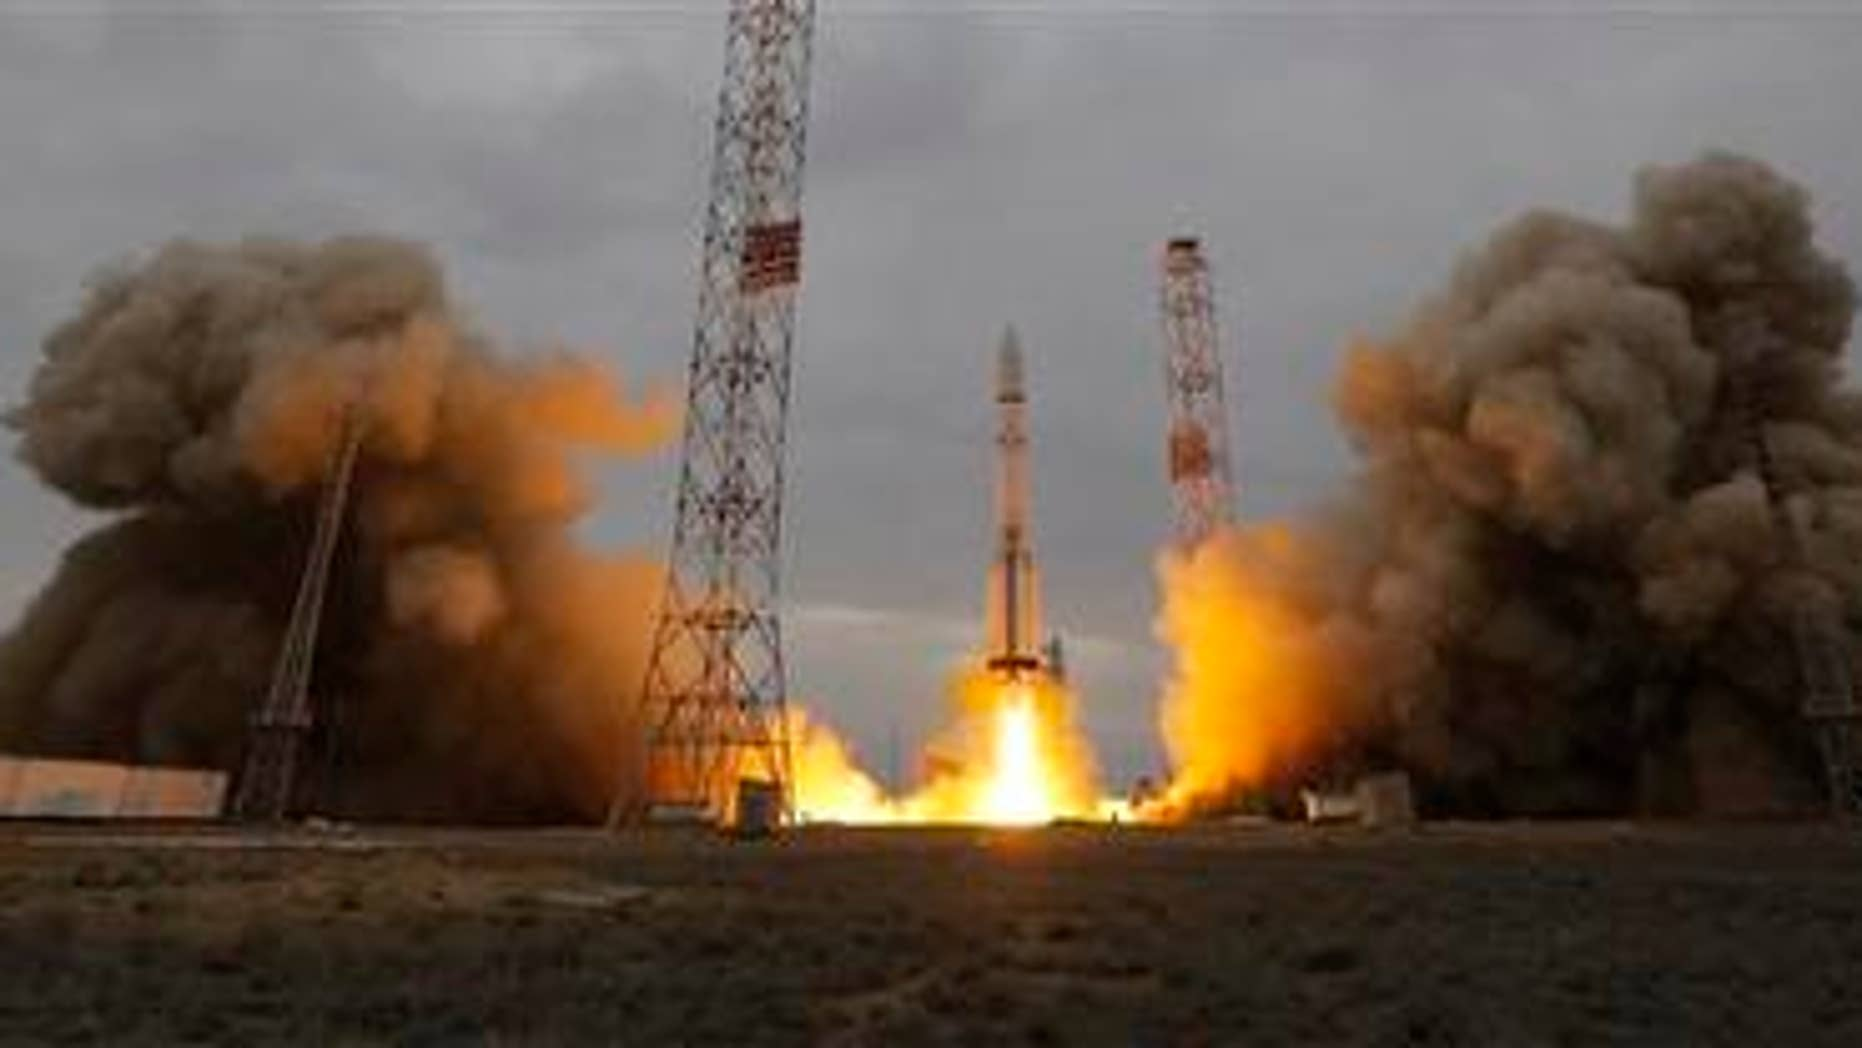 The Proton-M rocket booster blasts off at the Russian leased Baikonur cosmodrome, Kazakhstan, Monday, March 14, 2016. Europe and Russia launched a joint mission Monday to explore the atmosphere of Mars and hunt for signs of life on the red planet. (AP Photo/Dmitri Lovetsky)